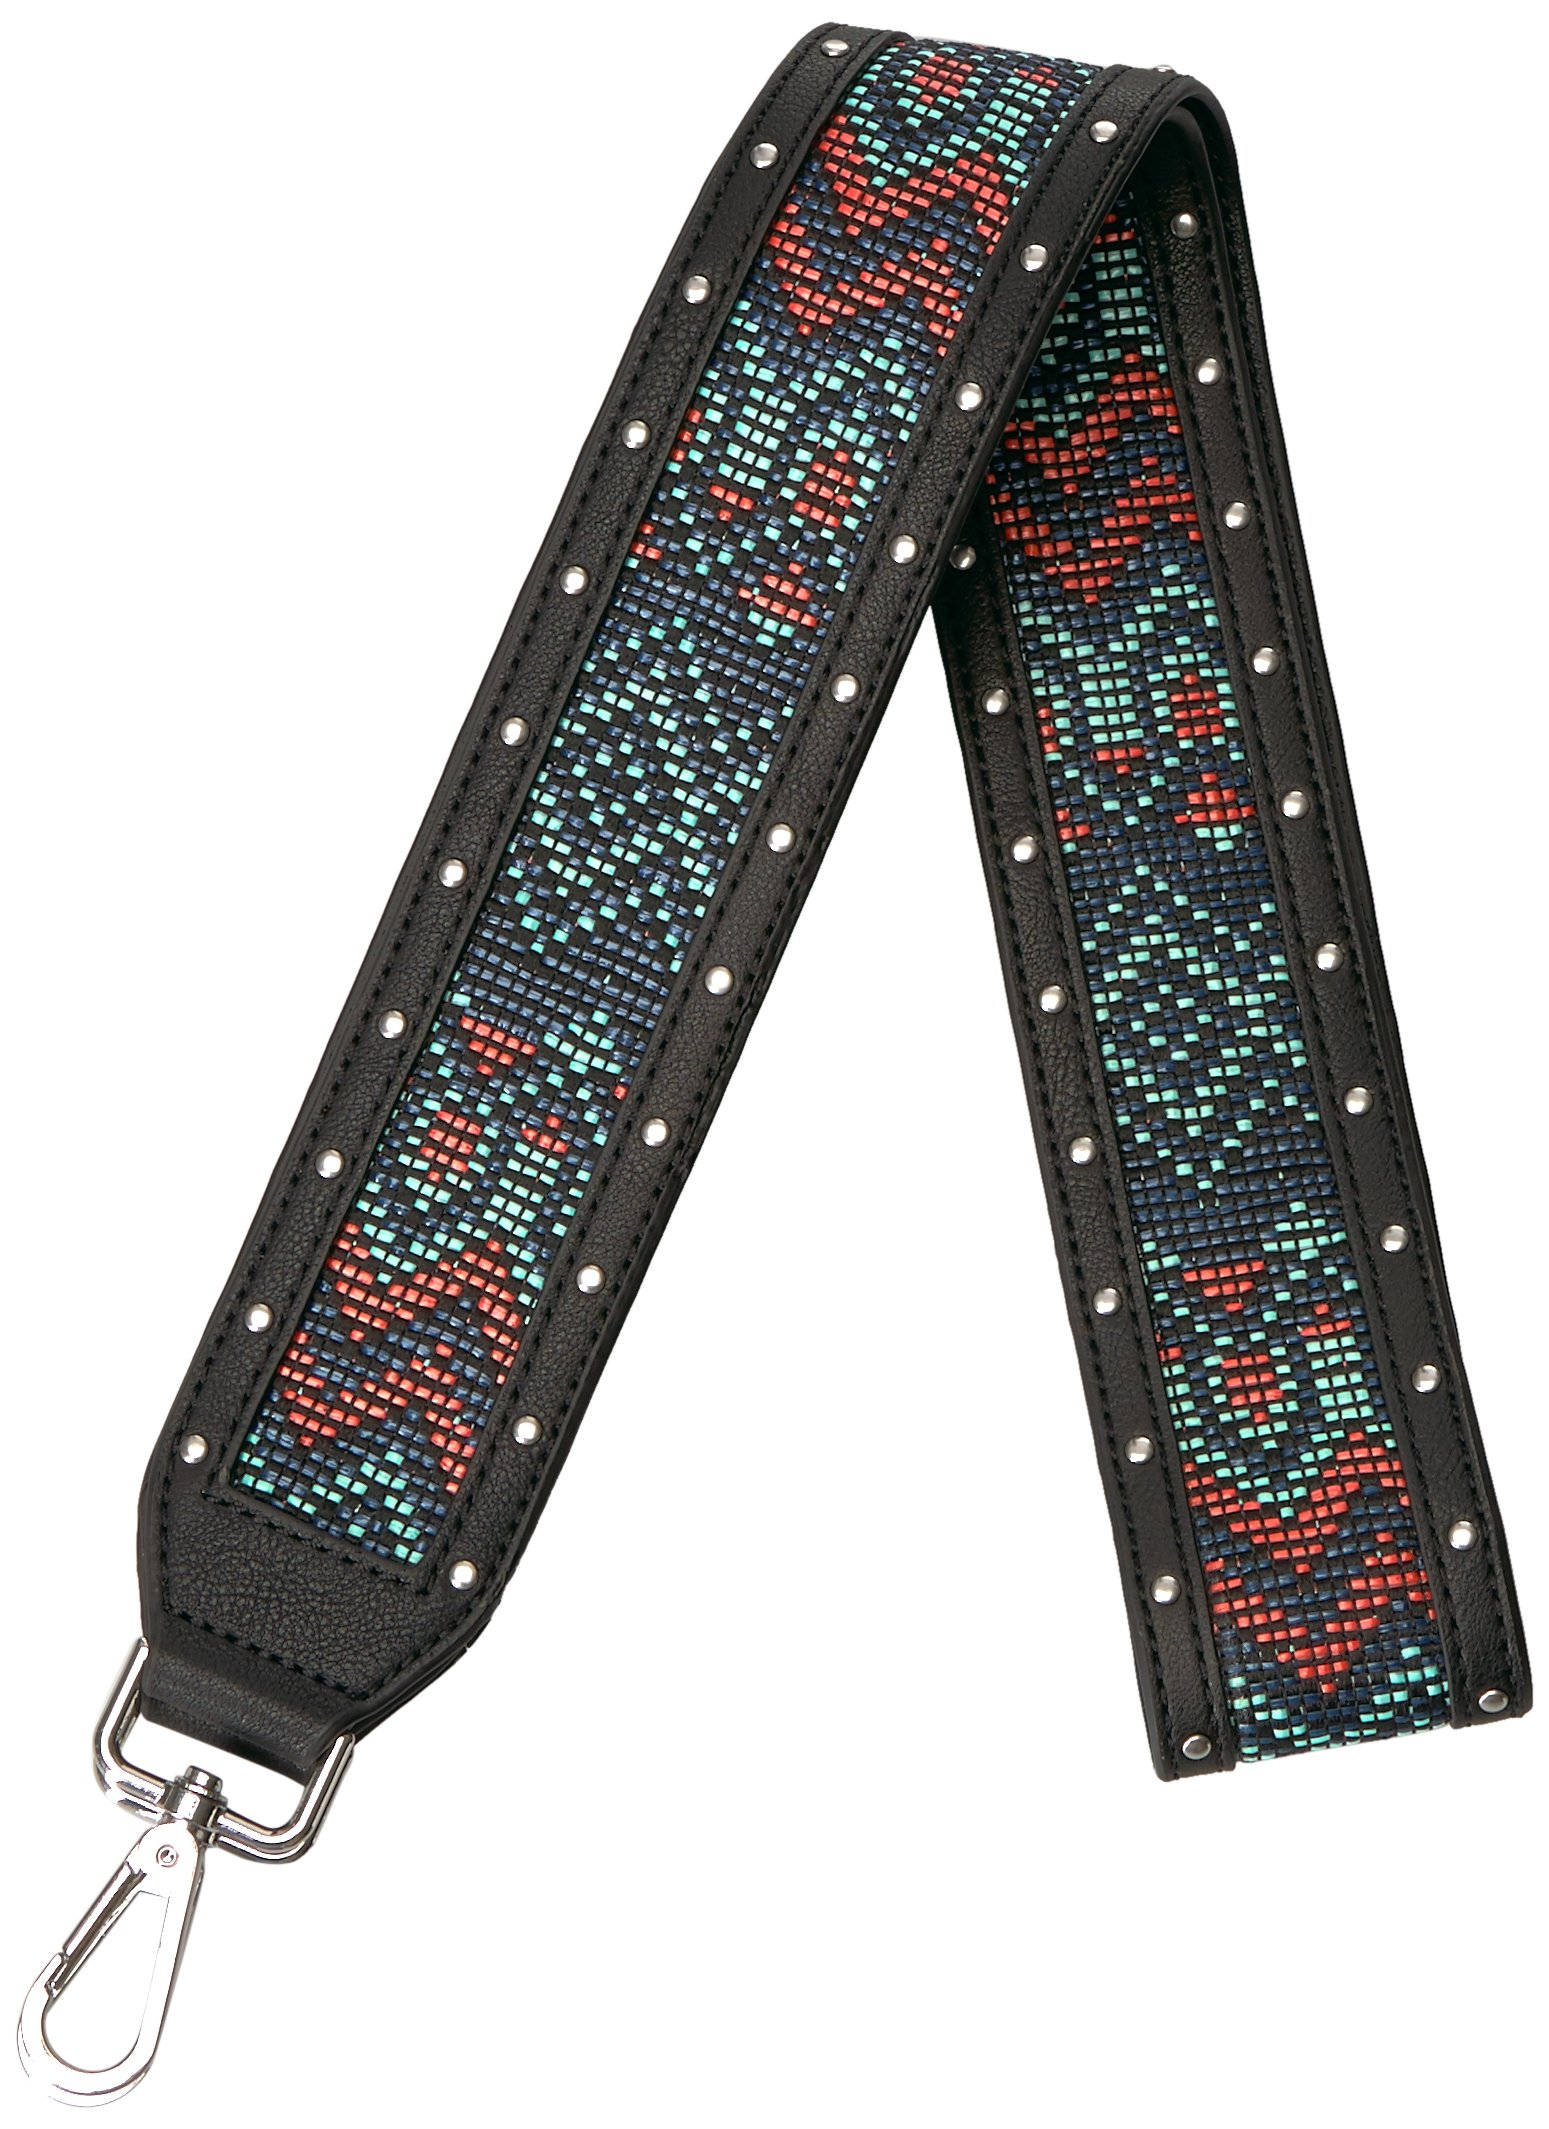 The Fix Emily Guitar-Style Bag Strap Wallet, Geo Print Multi, One Size by The Fix